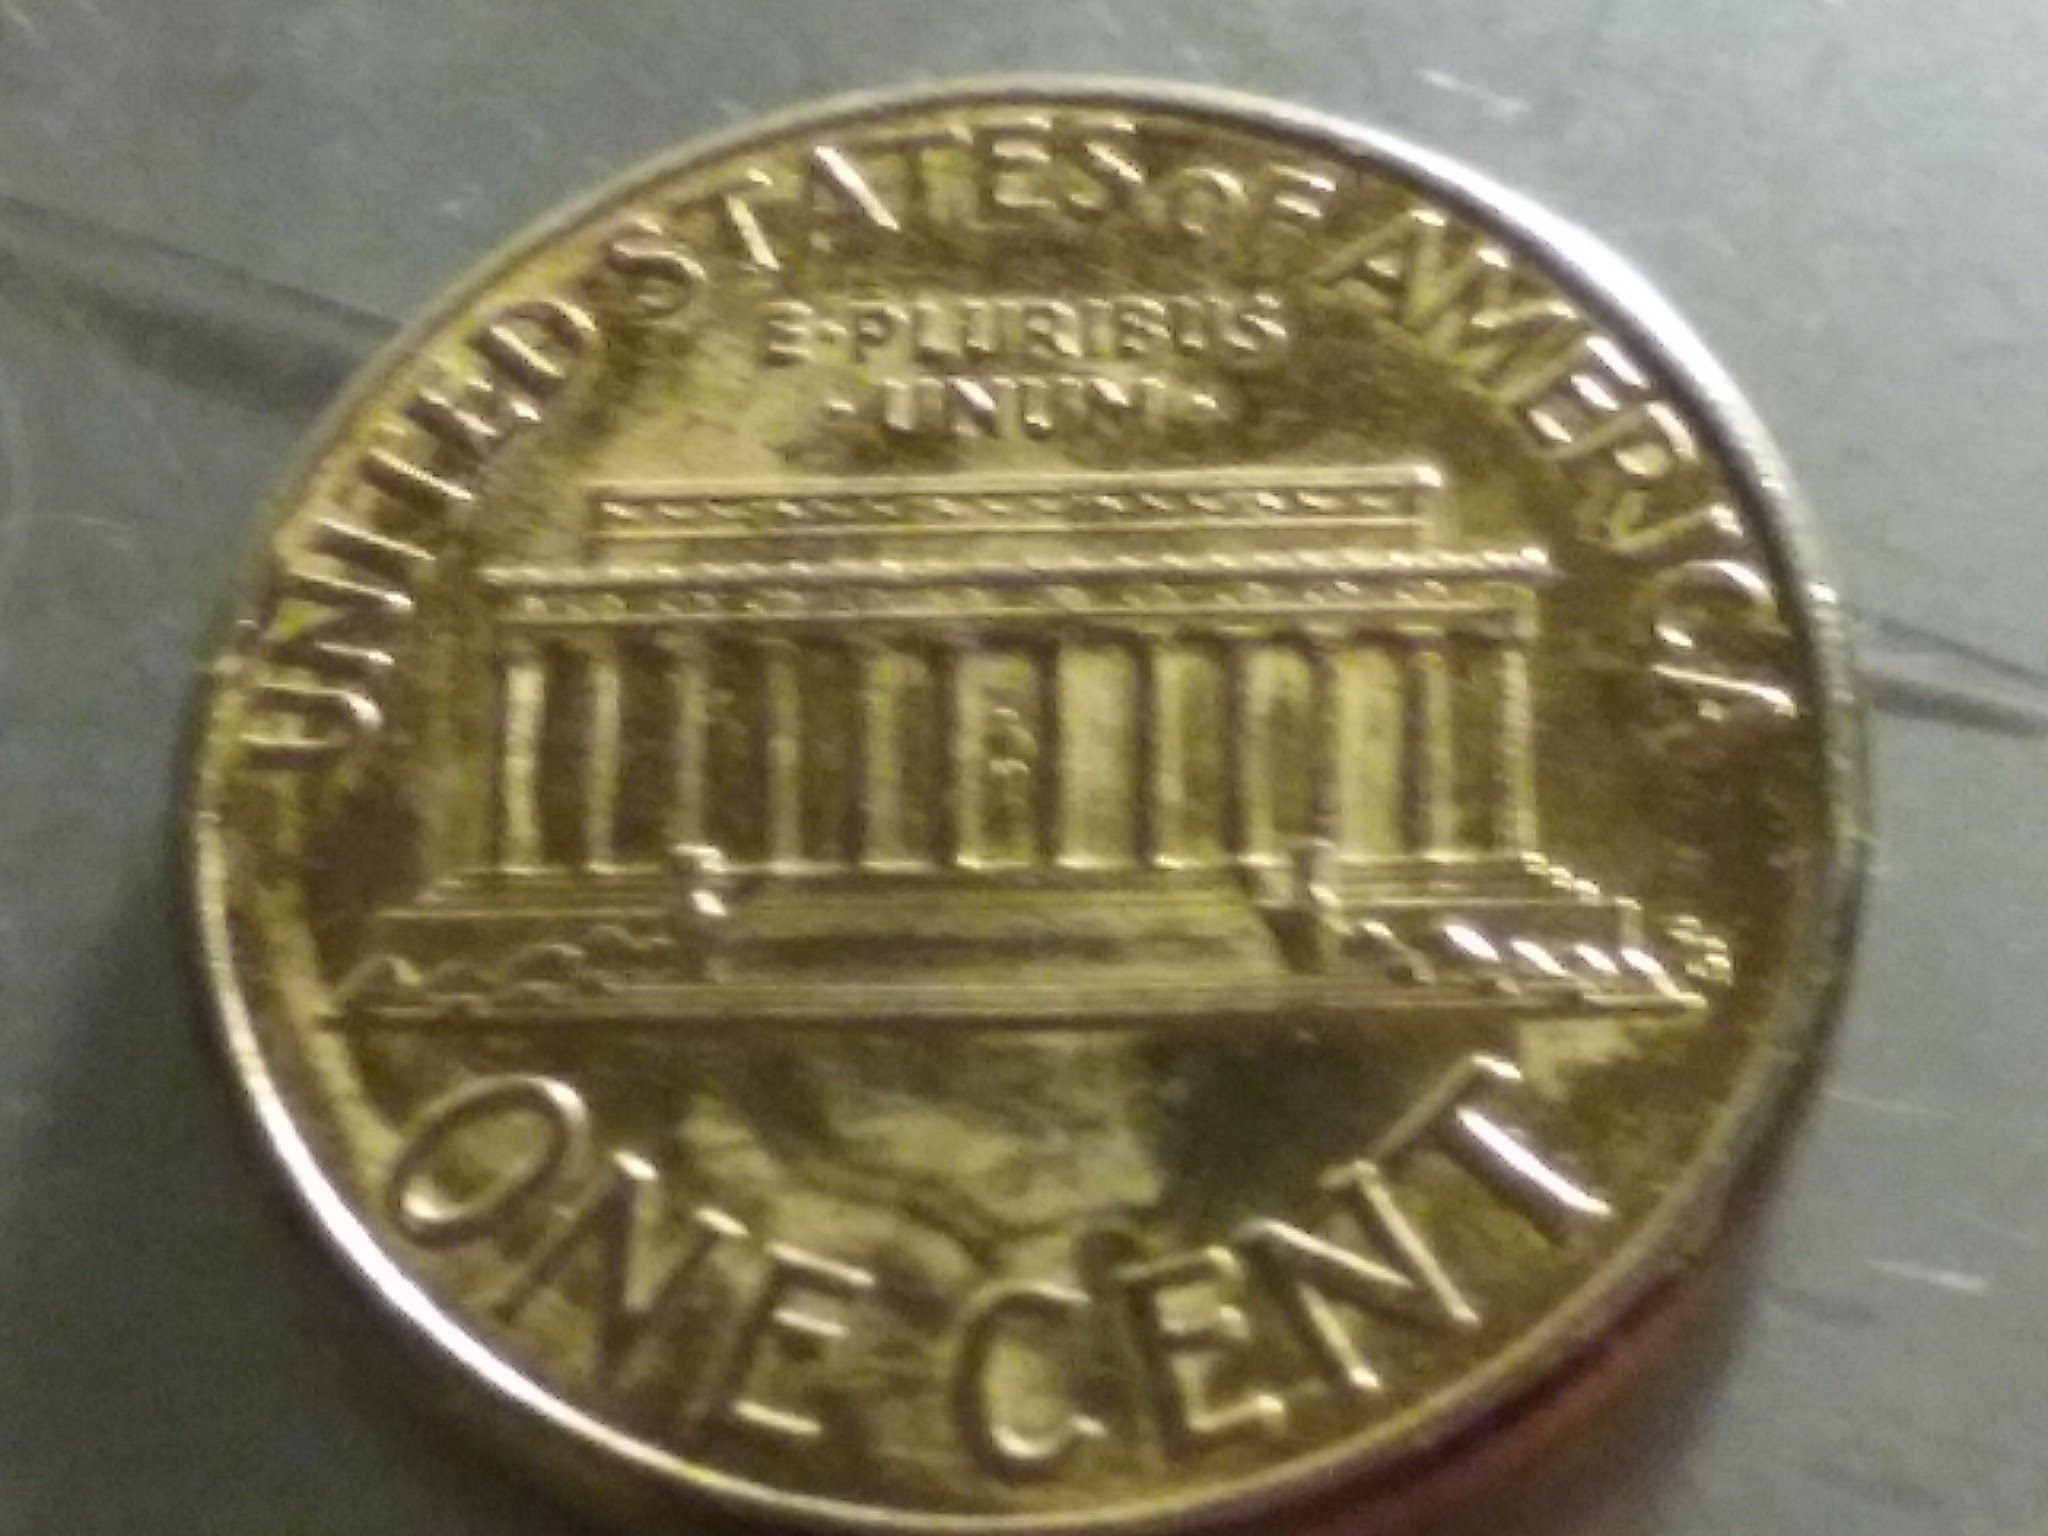 Rare 1999 D Gold Memorial Lincoln Penny - for sale, buy now